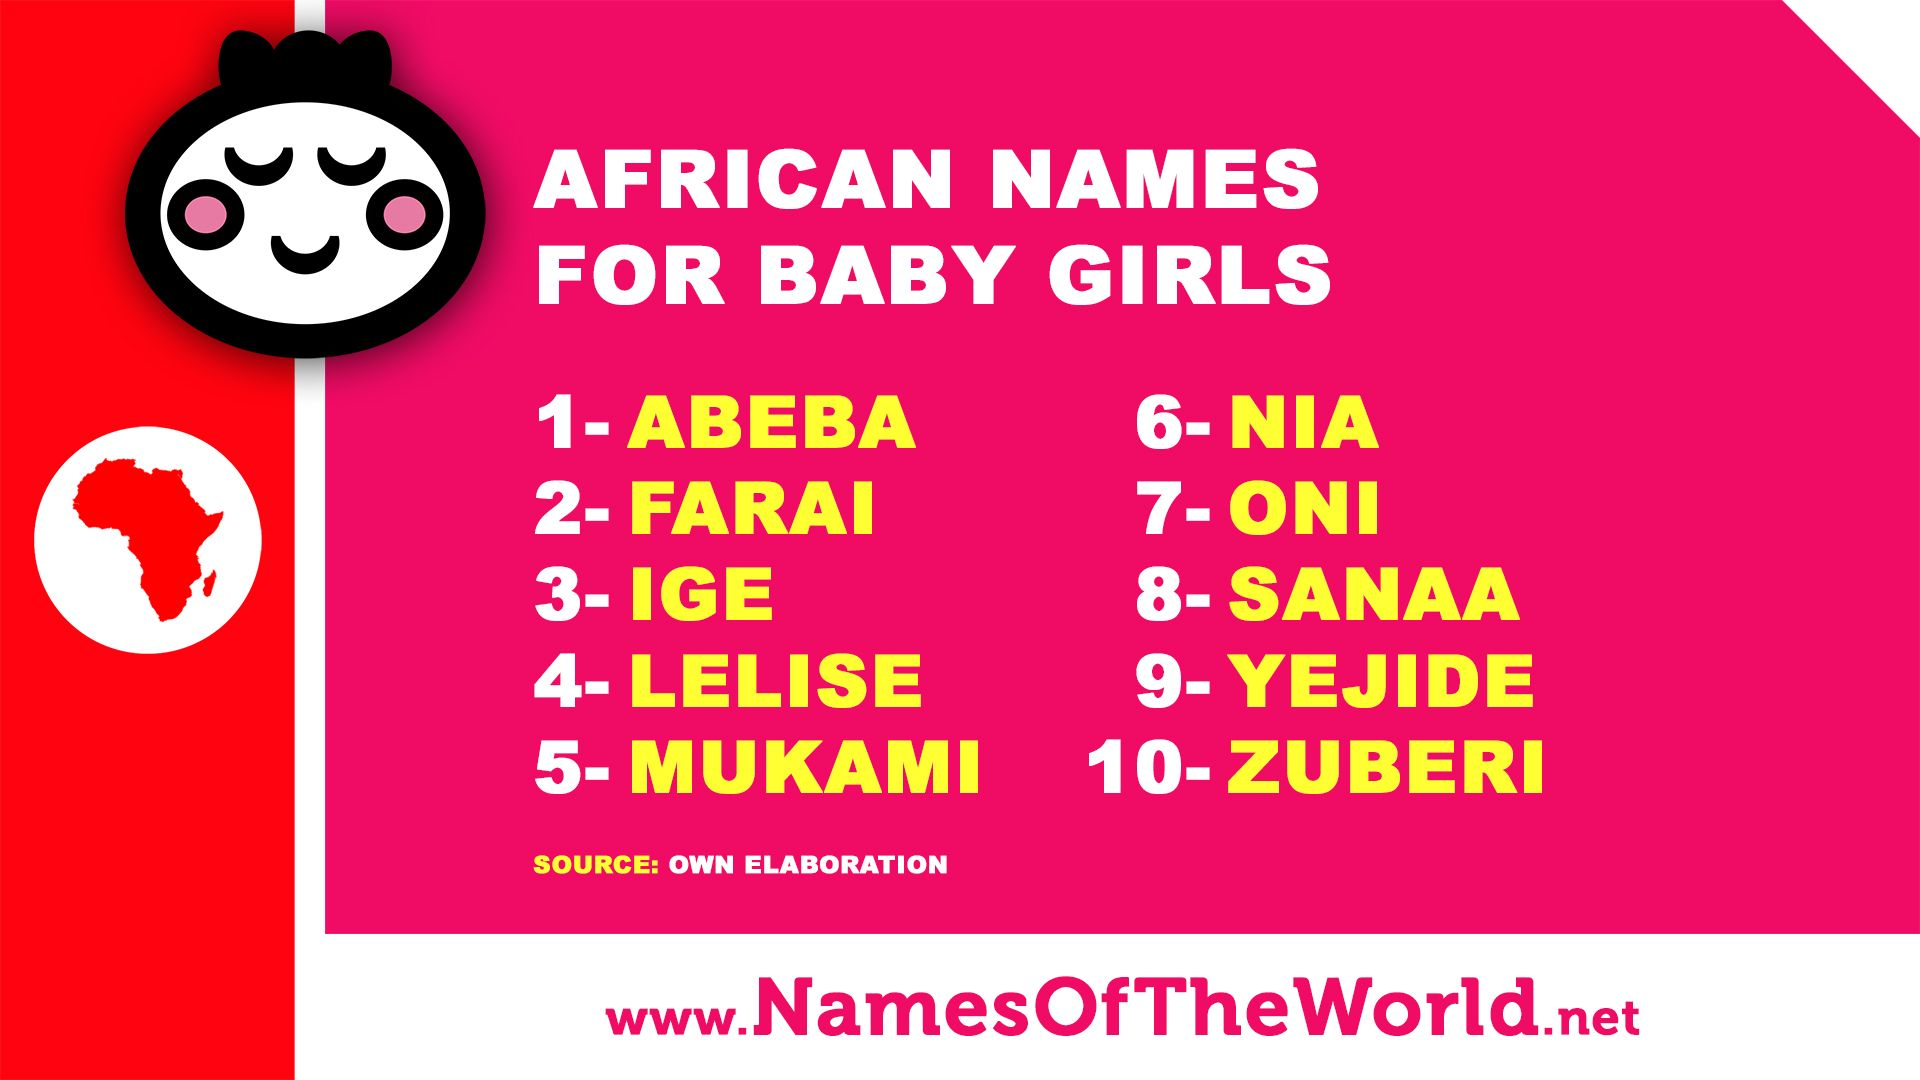 African names for baby girls. More names and their